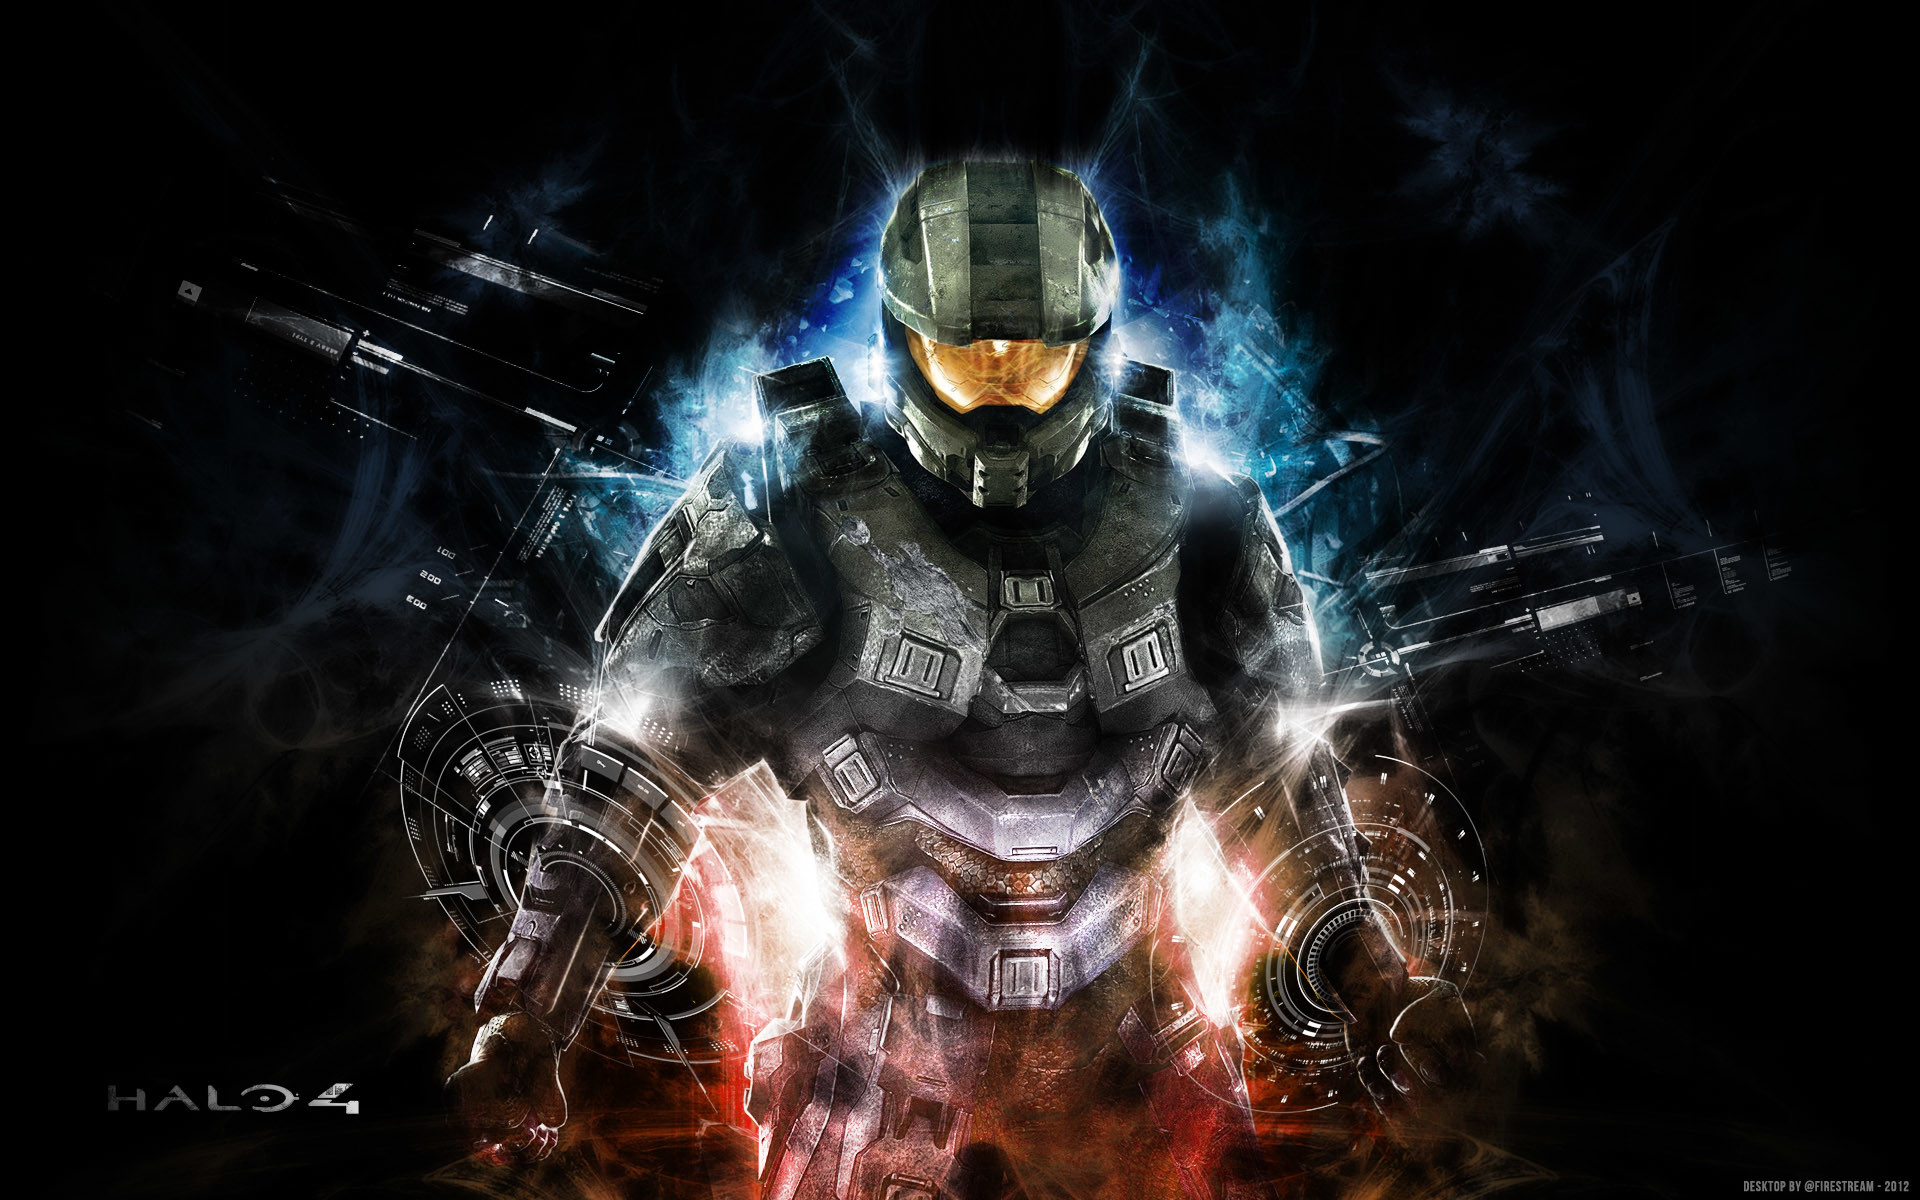 Beautiful Halo 4 wallpaper uploaded by IGC – Master Chief